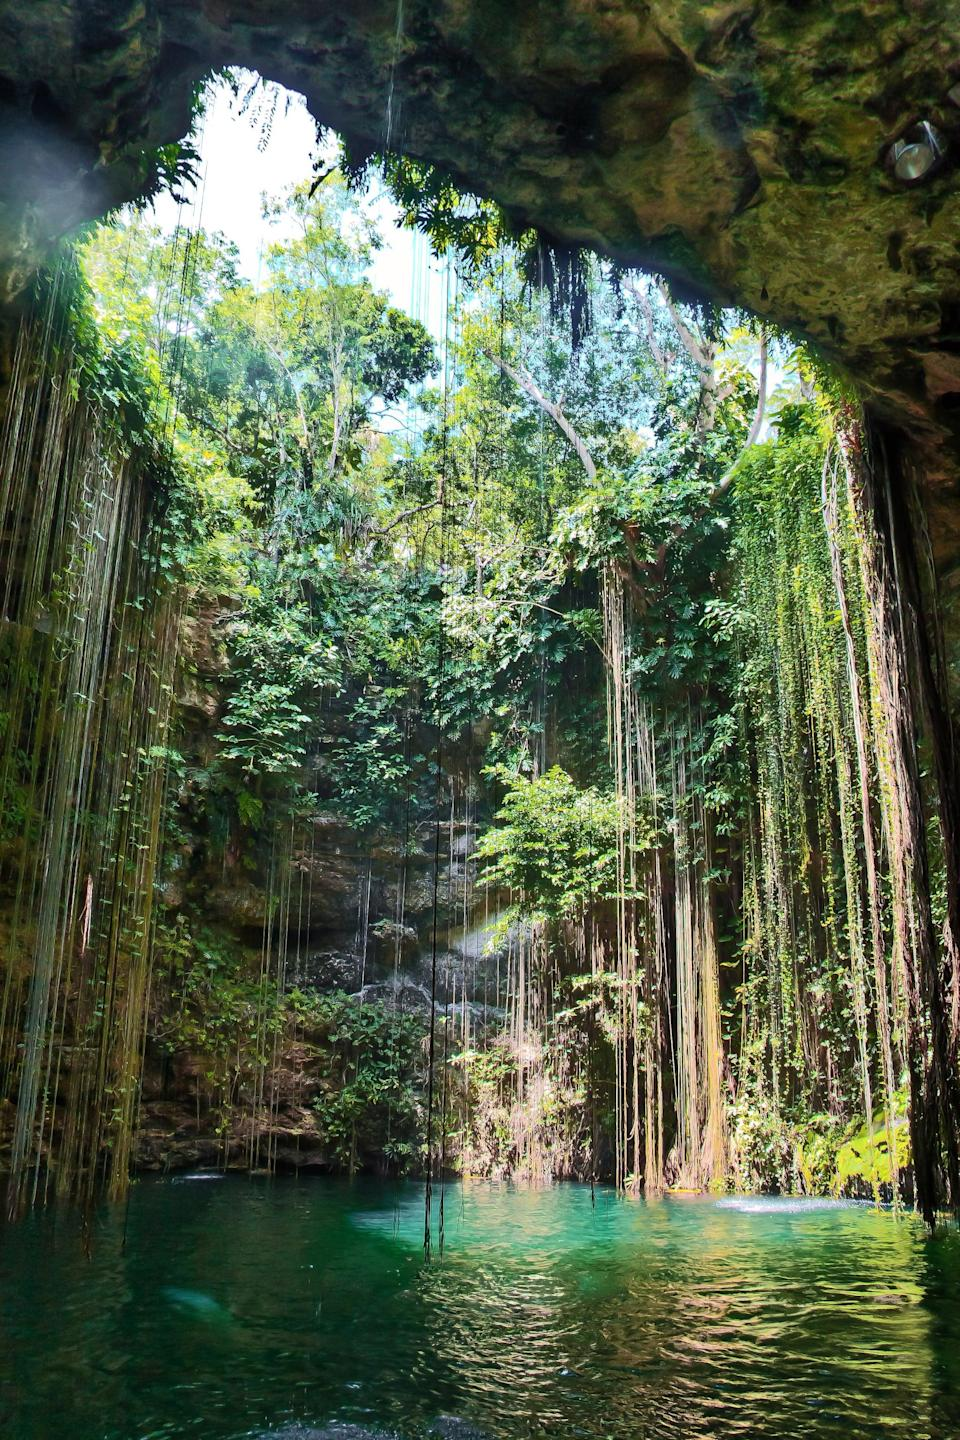 <p>A cenote is a natural sinkhole that fills up with water - many people in past civilizations would use it as a natural well for water. Ik Kil is one of the more famous cenotes in Mexico and is well worth a visit. </p>